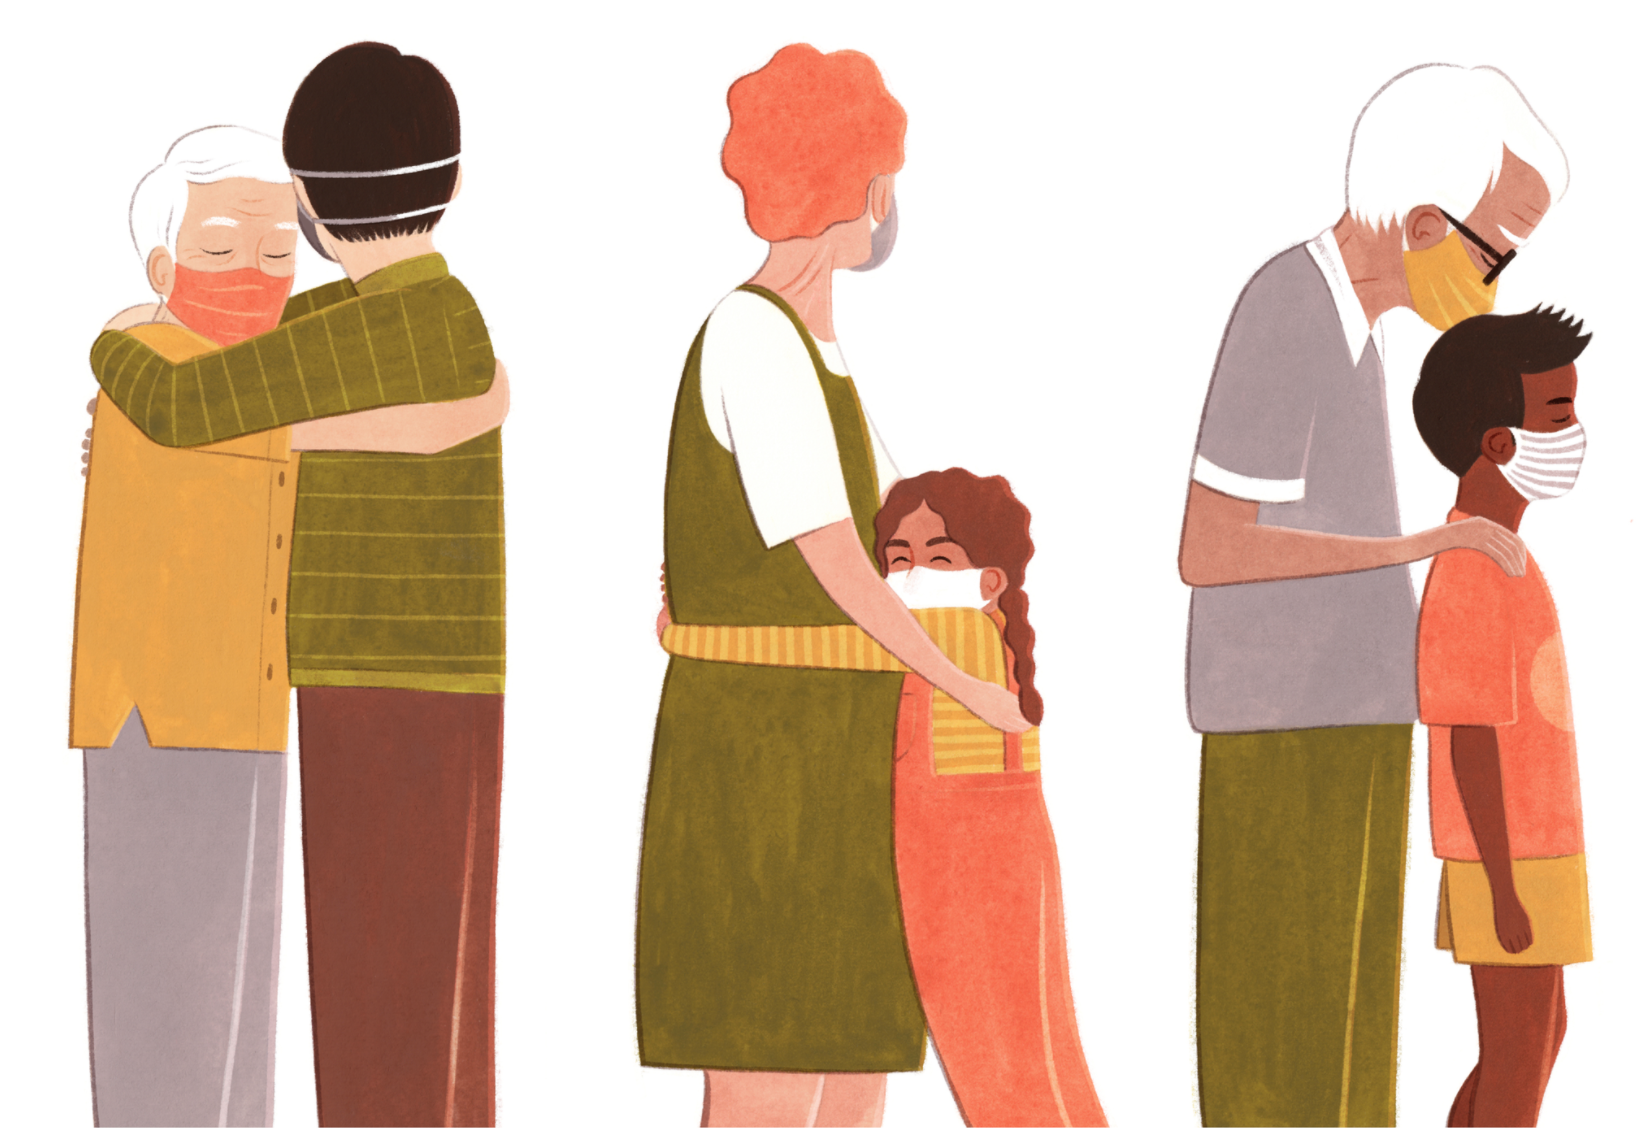 NYT Illustrates How to Hug Safely During COVID-19